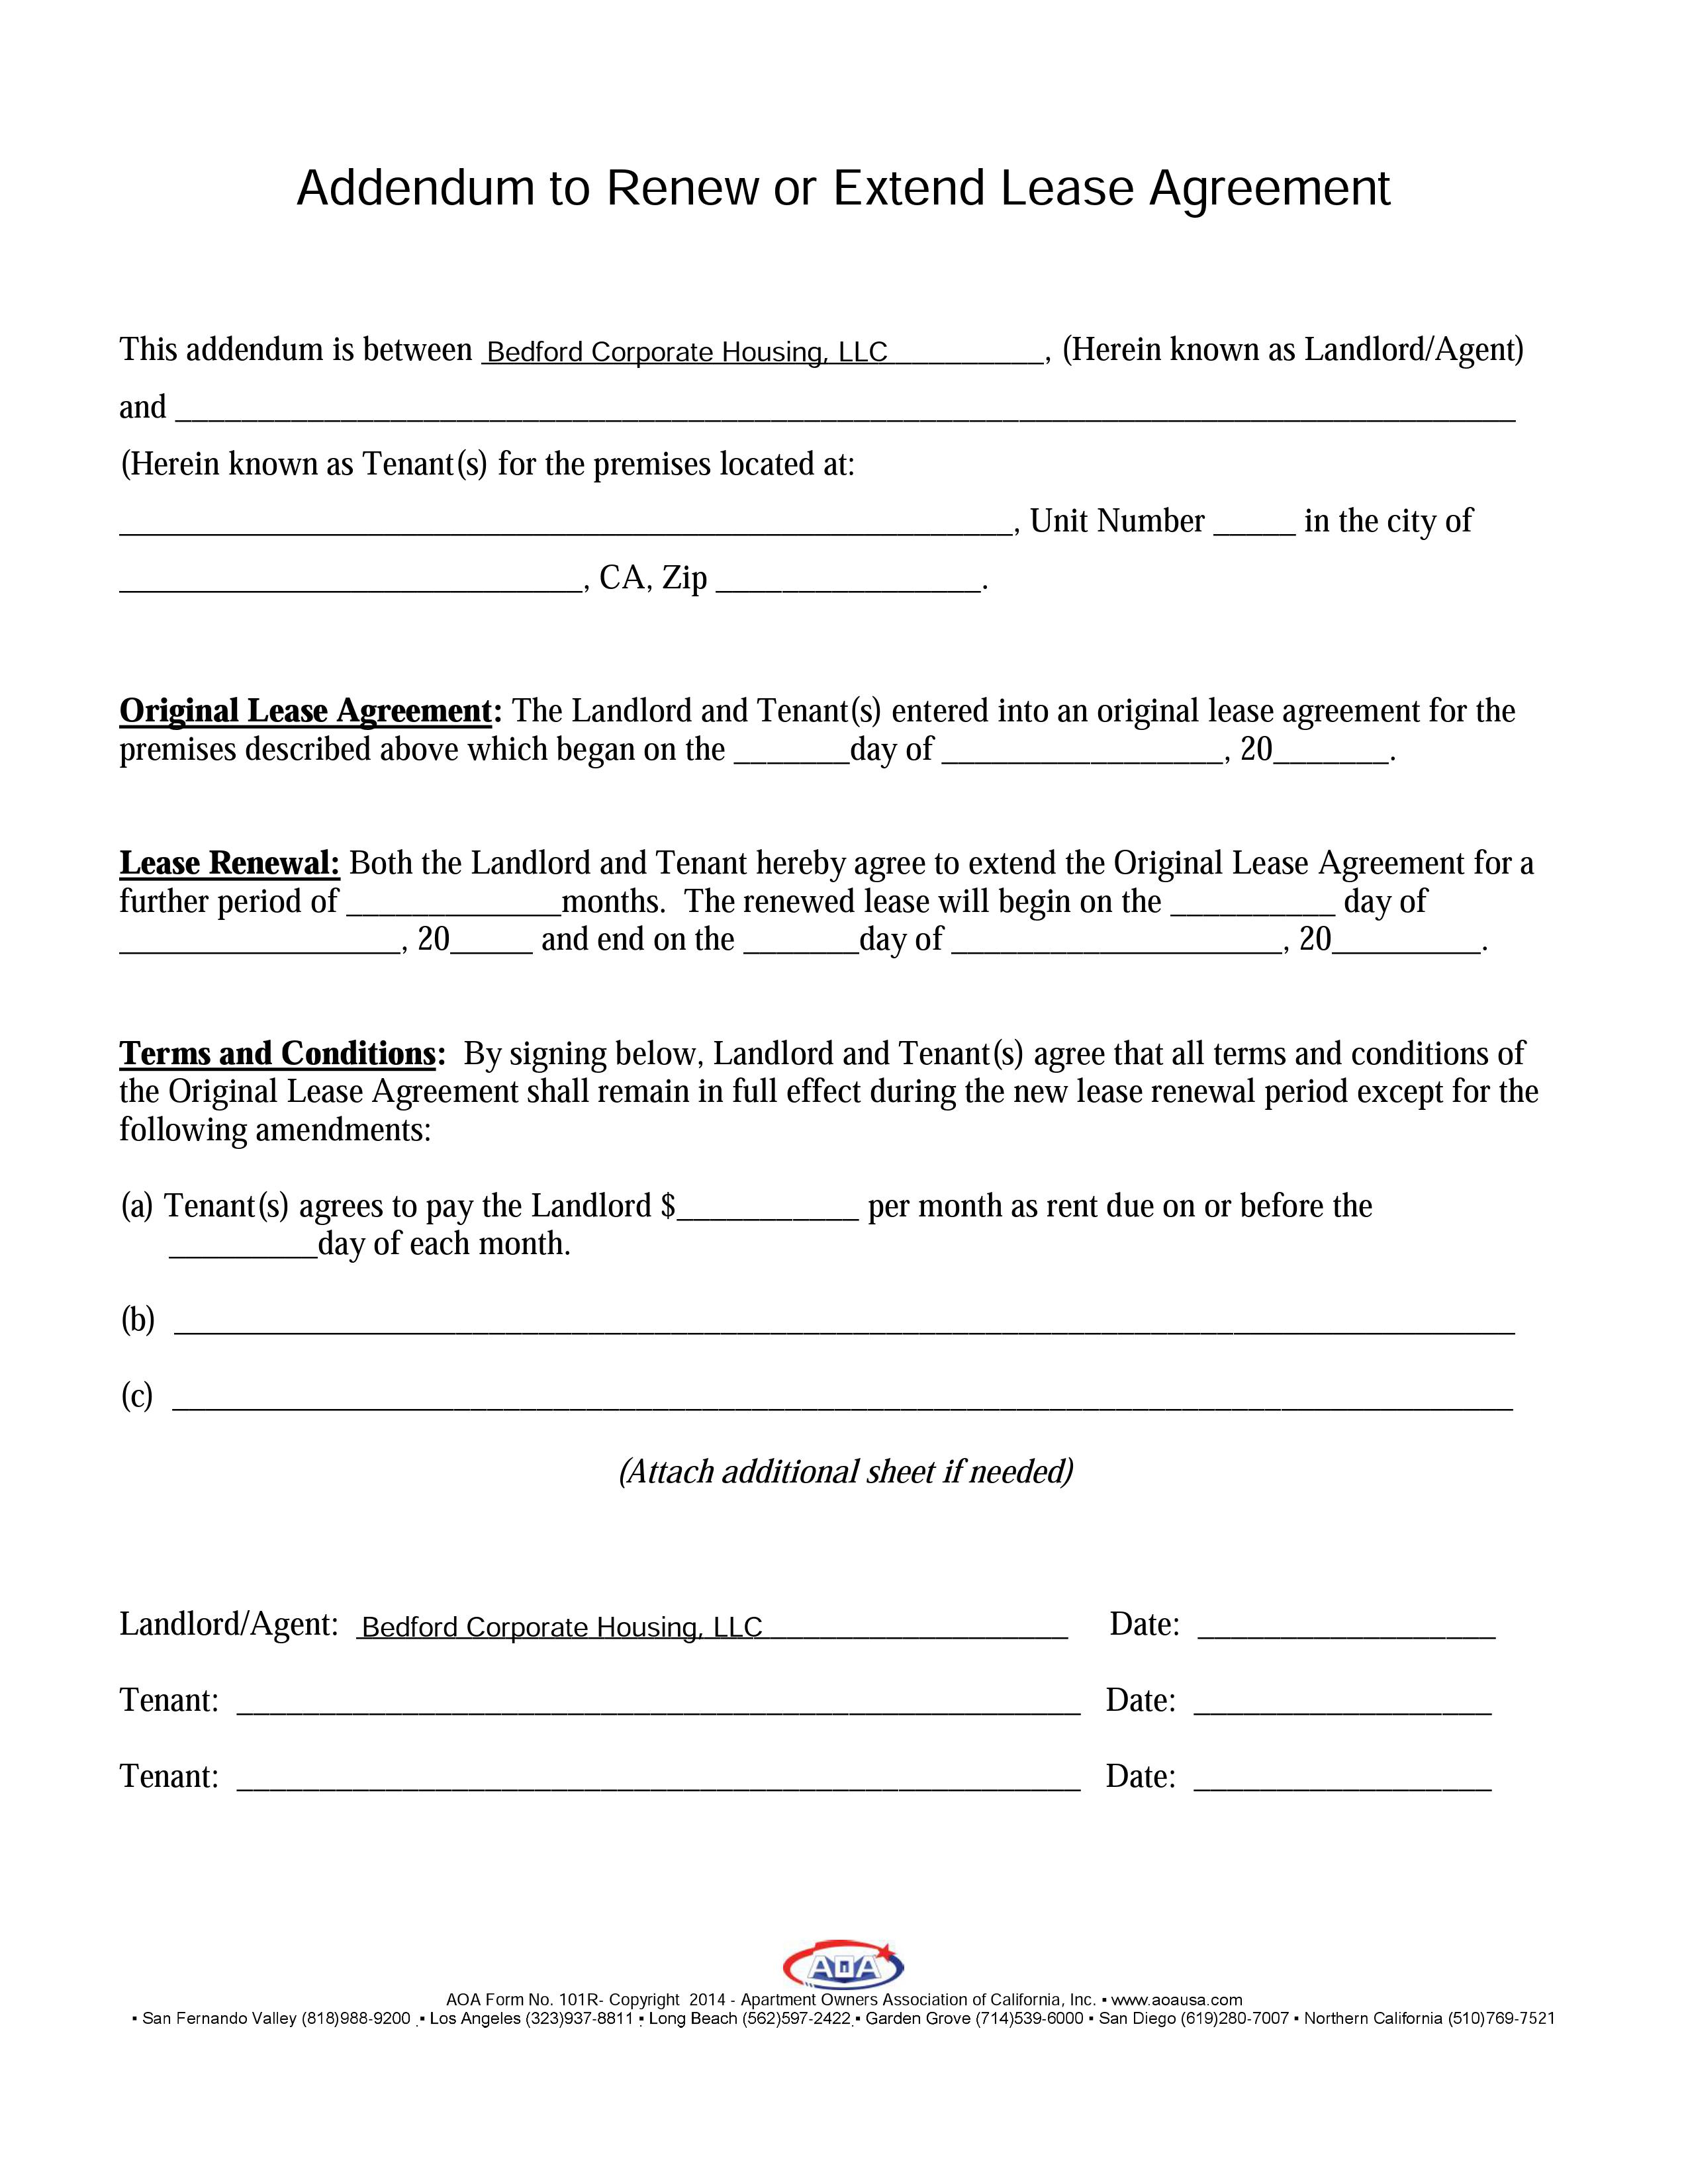 Sample Lease Agreements Documents Corporate Housing In Los